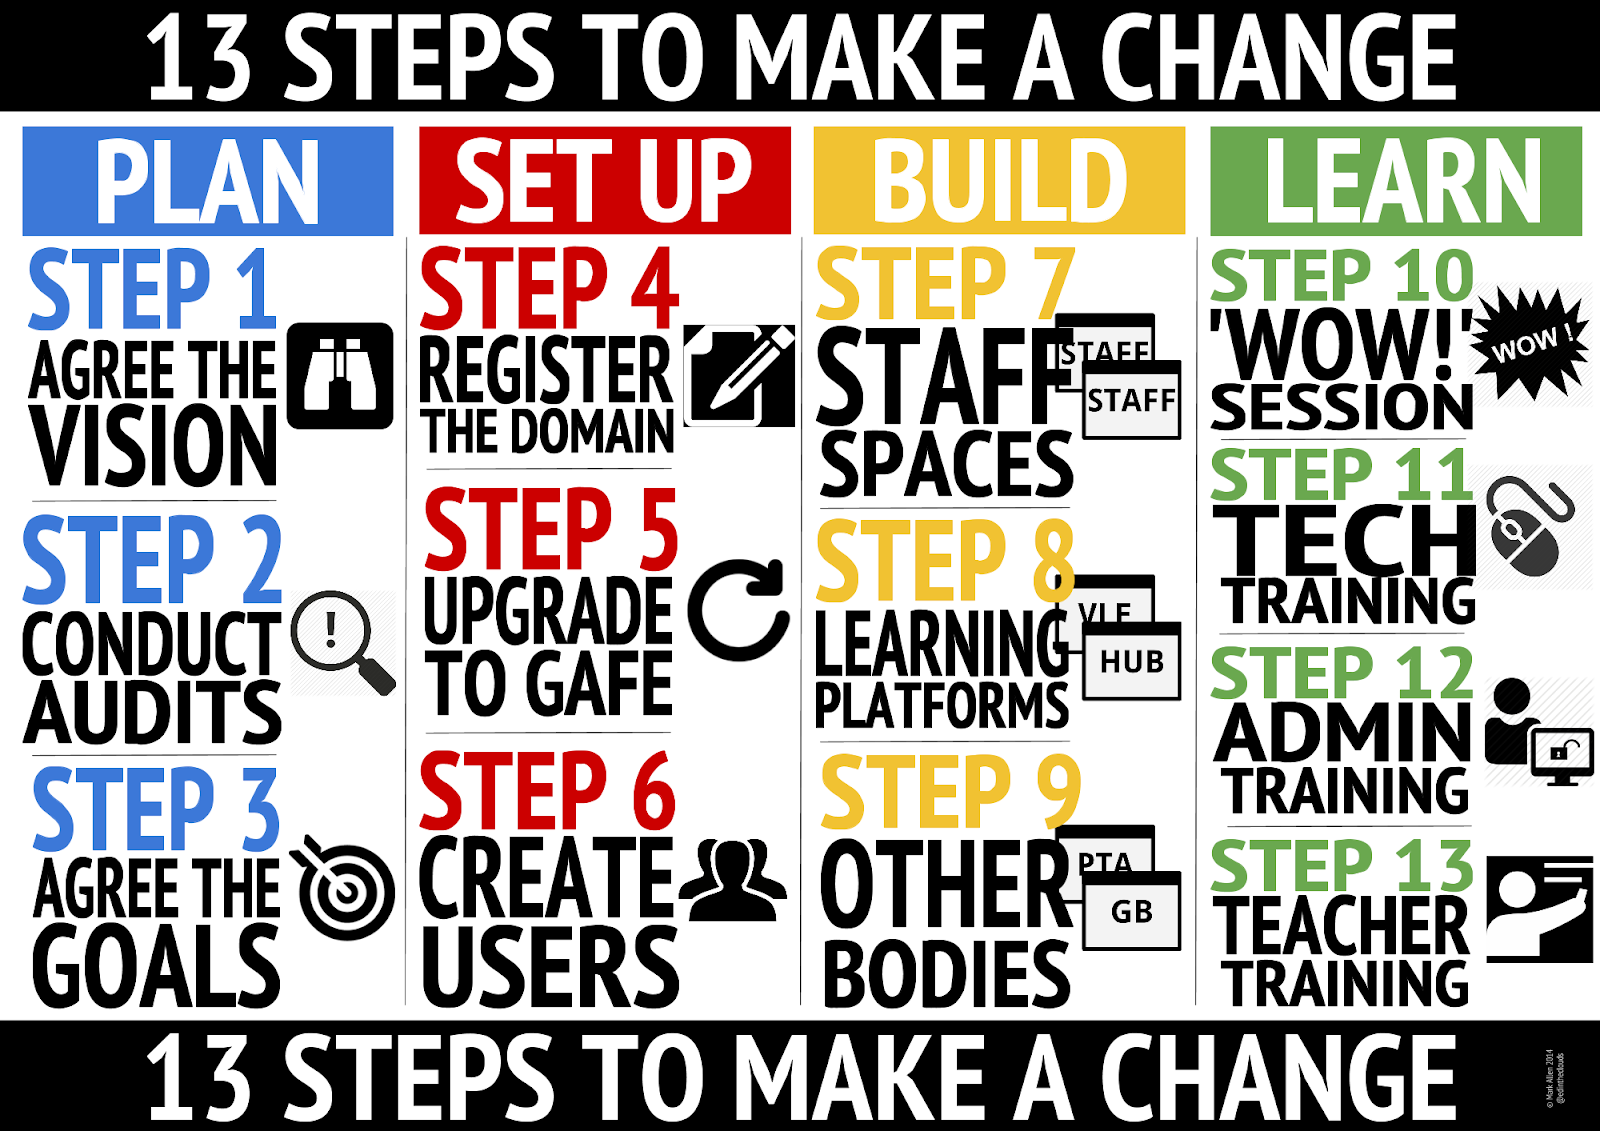 13 STEPS TO MAKE A CHANGE.png